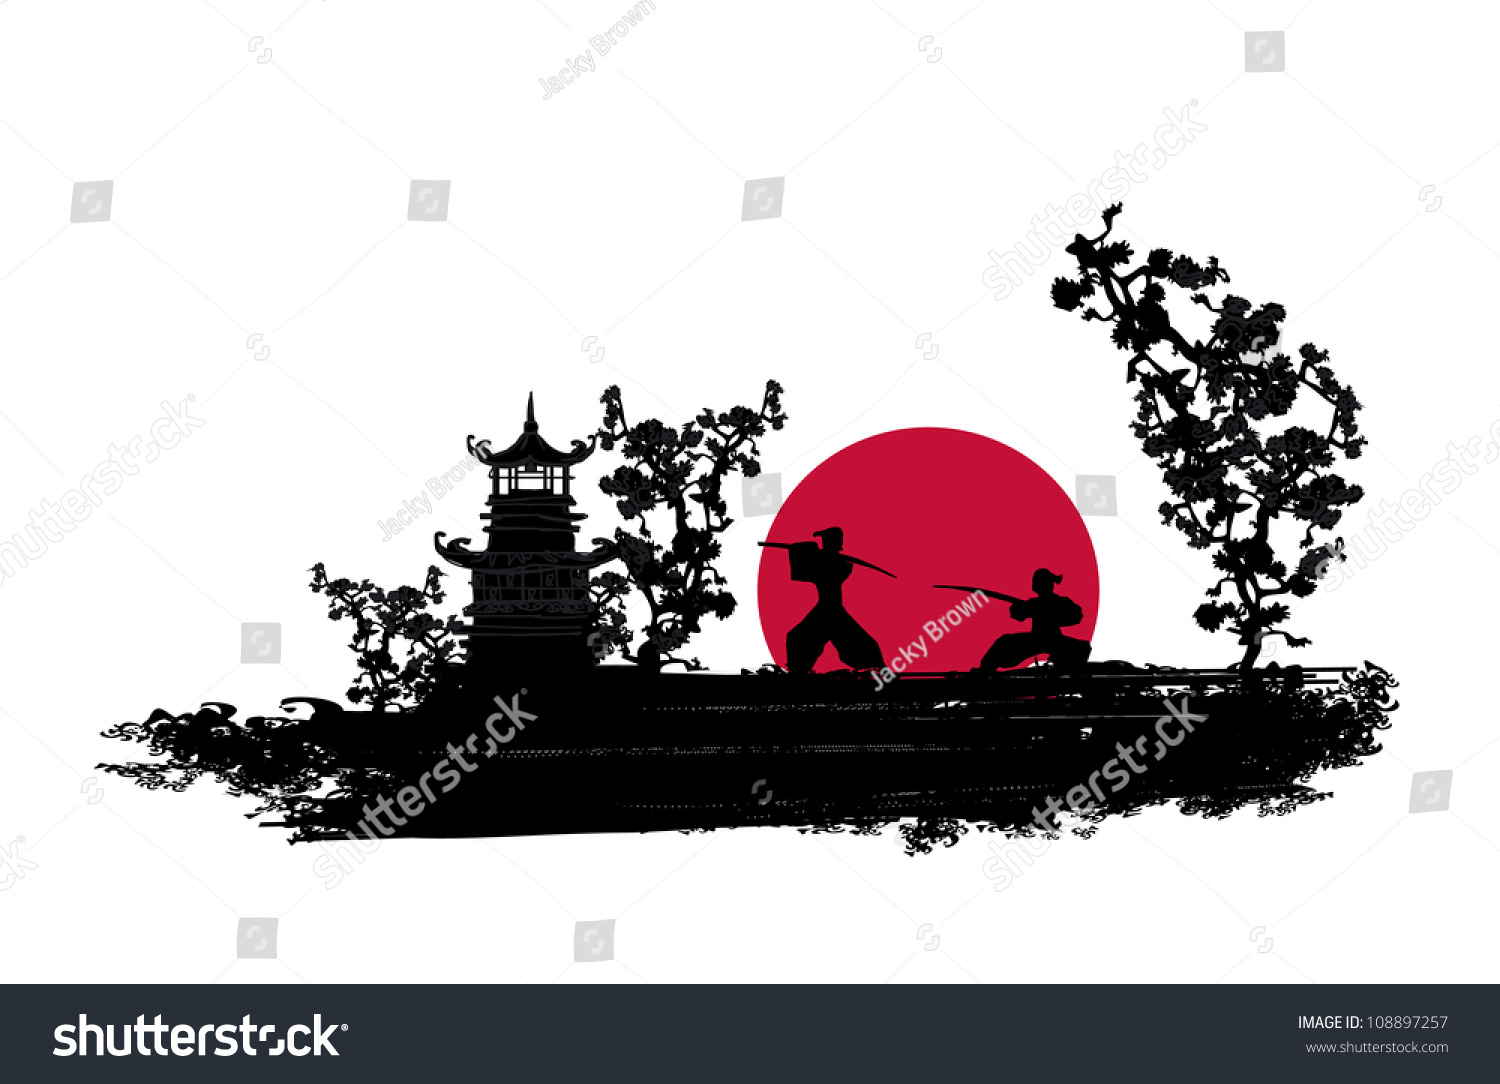 samurai values essays Differences and similarities between knights and samurai knights and samurai knights and samurai had many similarities, but also a few differences.